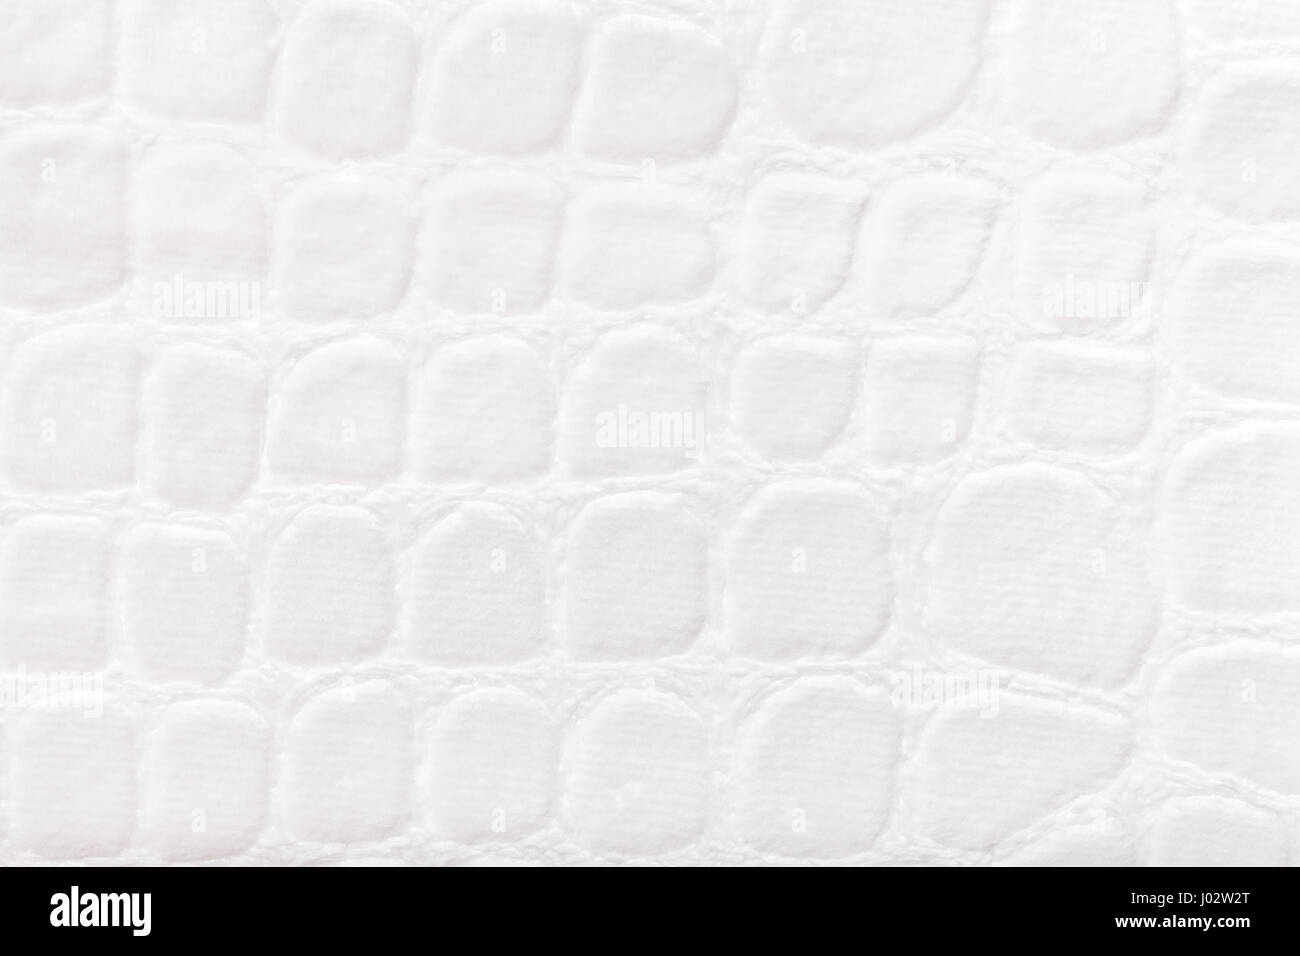 White background from a soft upholstery textile material, closeup. Fabric with pattern imitating crocodile skin.. - Stock Image